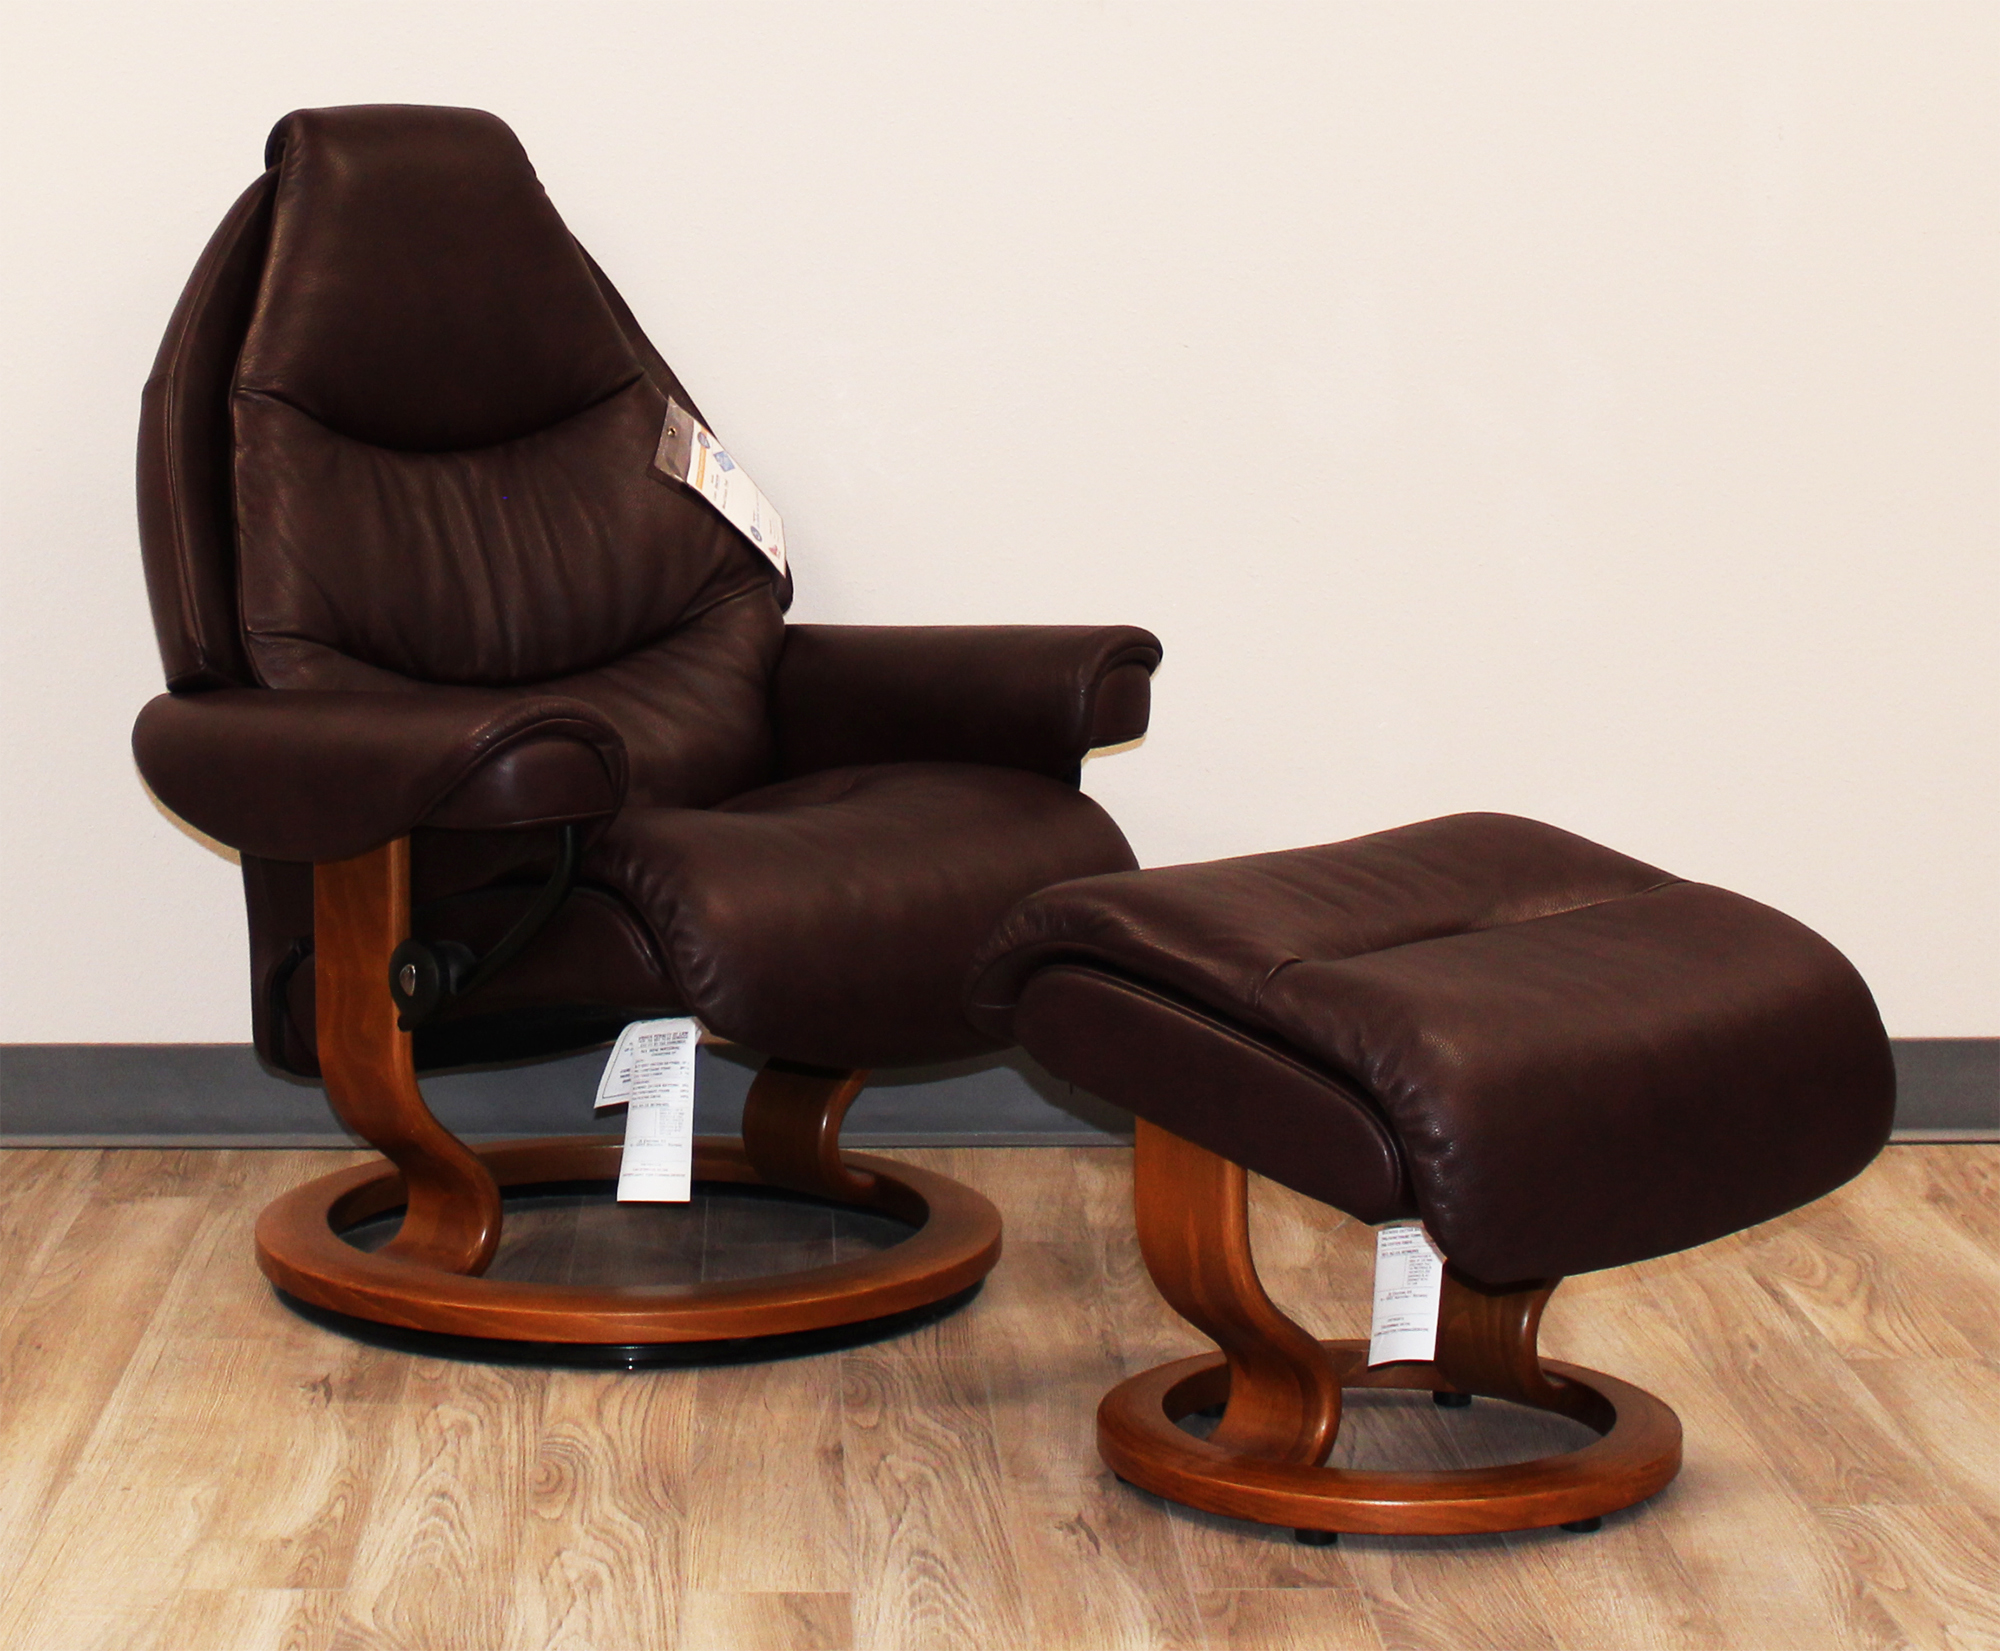 Stressless Voyager Premium Royalin Amarone Leather Recliner Chair